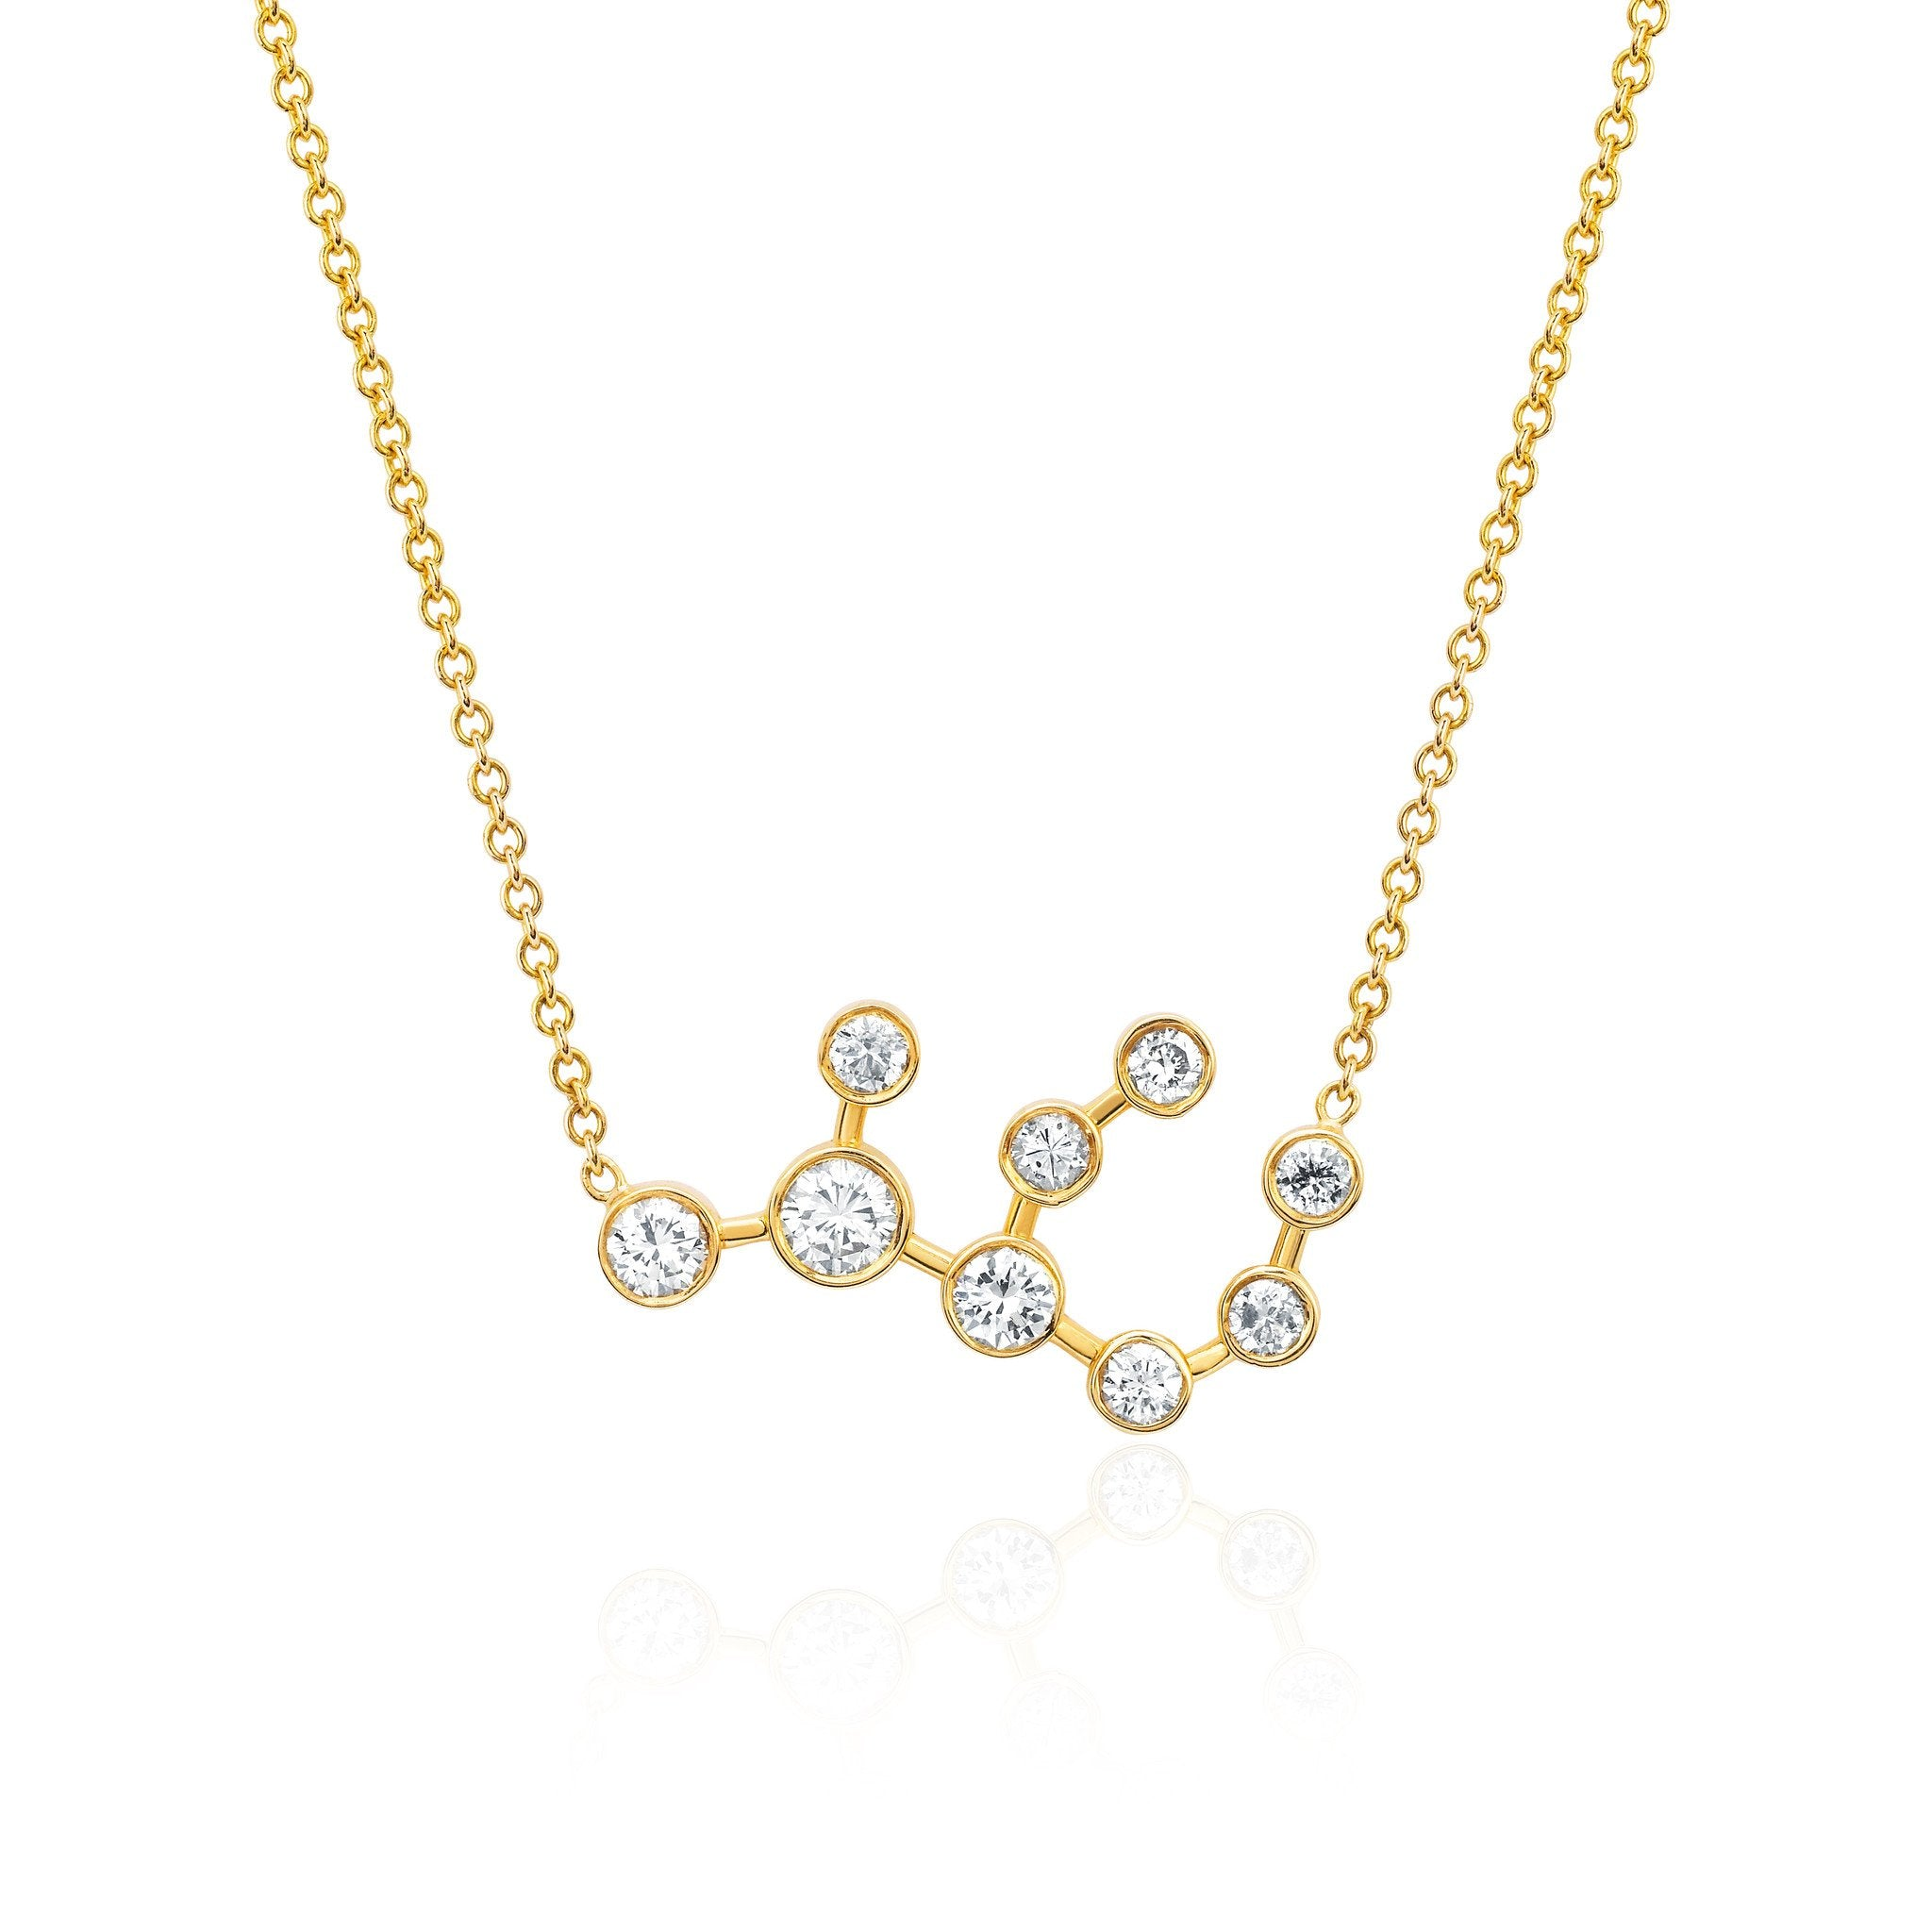 Virgo Diamond Constellation Necklace